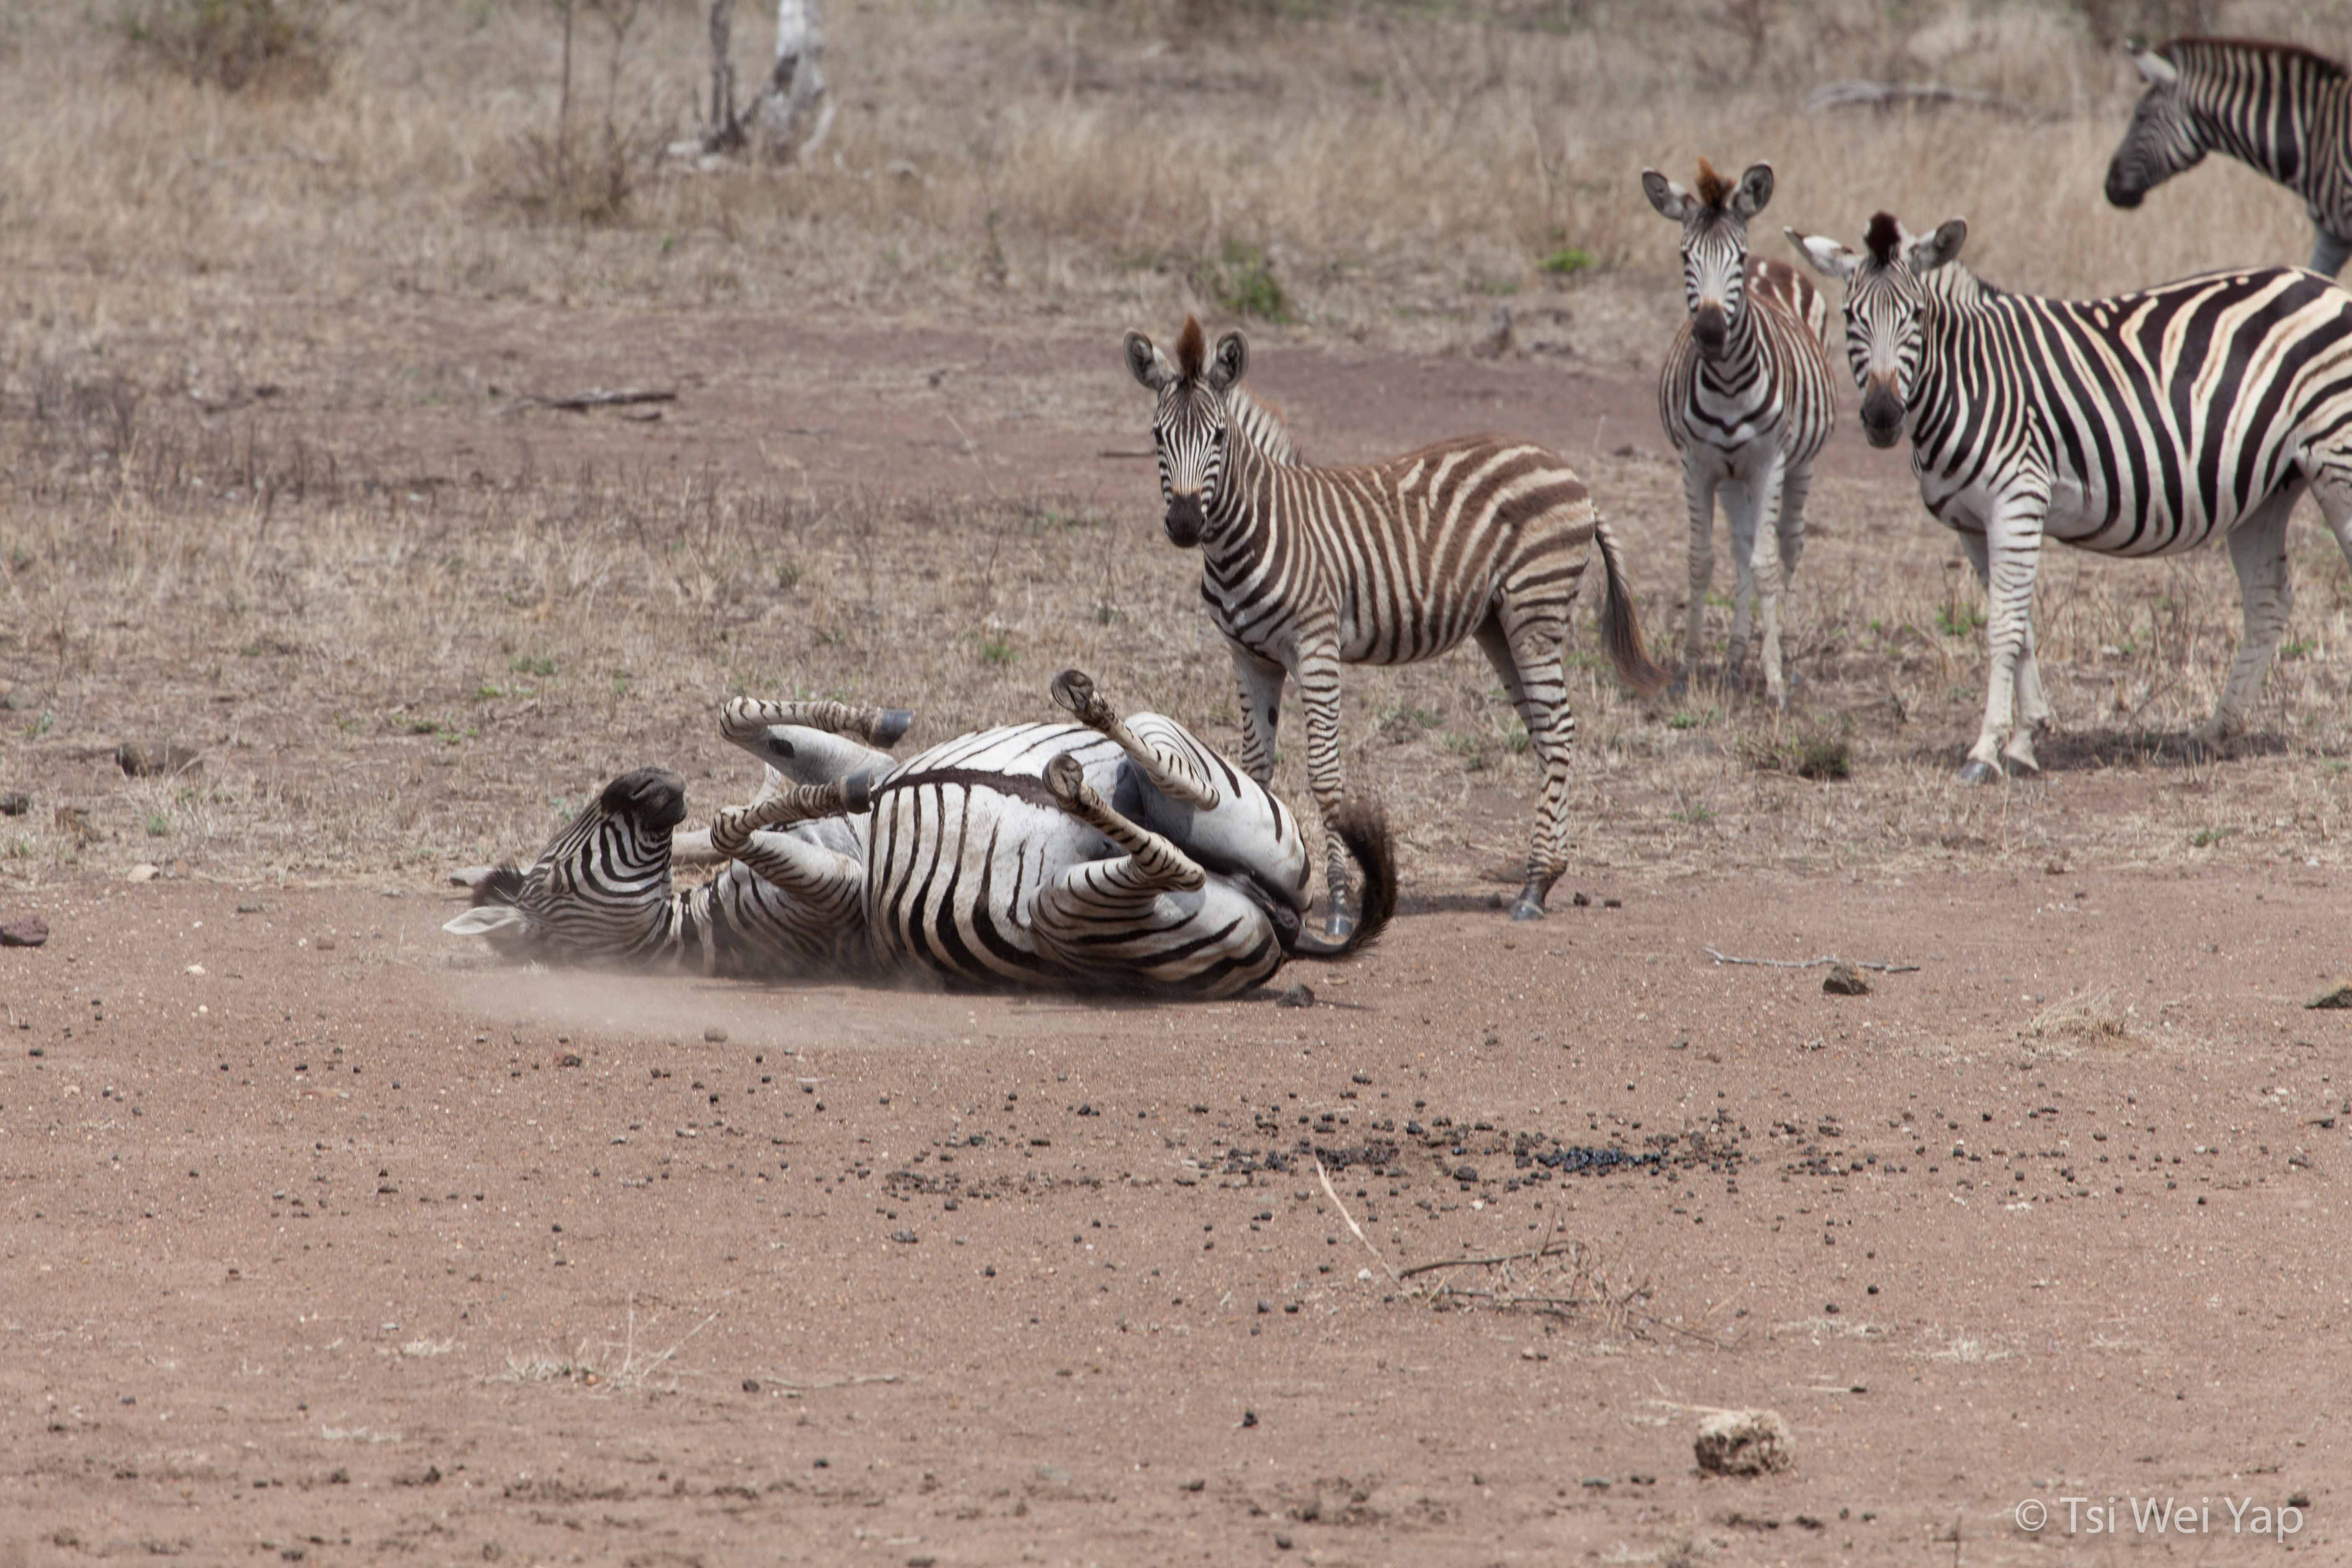 Zebras in Kruger National Park